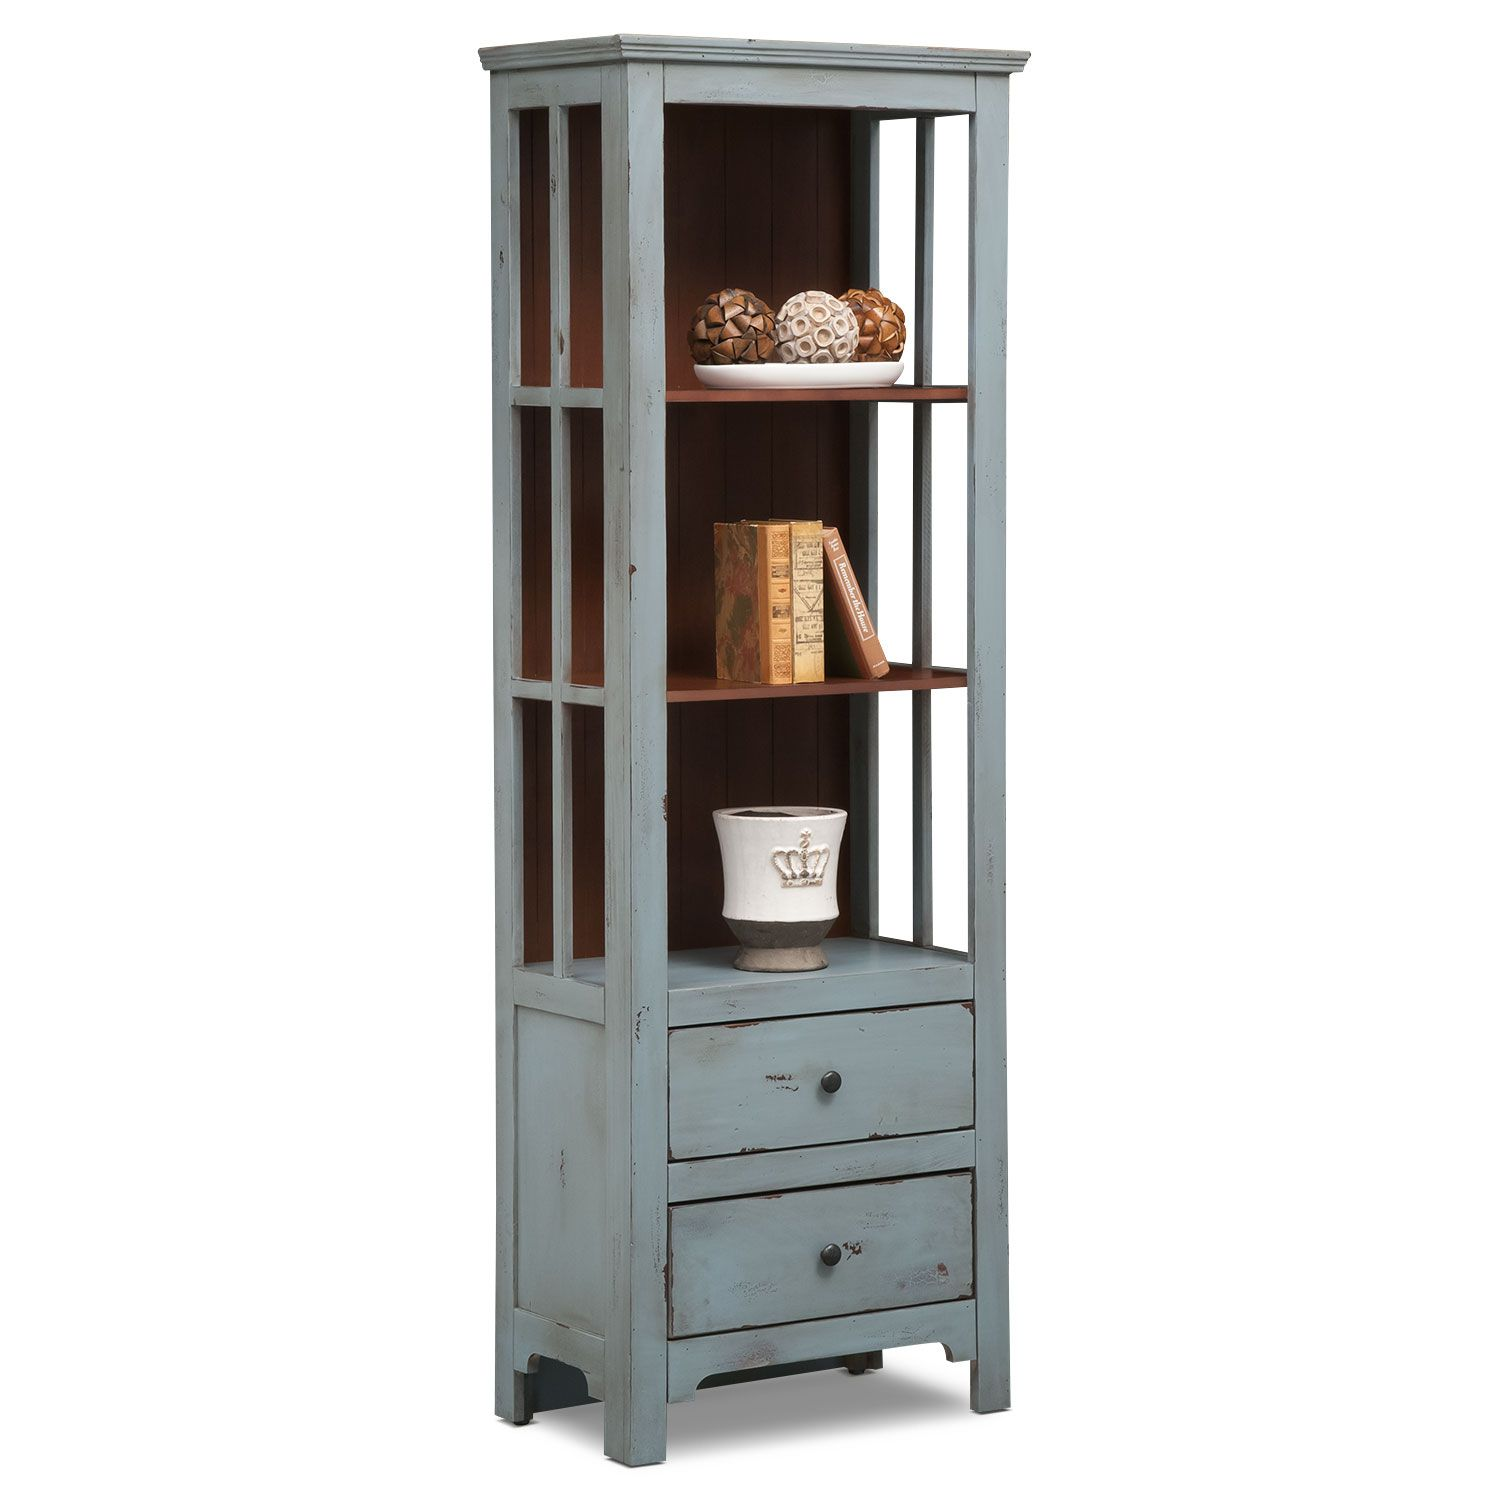 The Gorgeous Looks Of The Uncomplicated Keefe Blue Bookcase Are  Irrefutable. Its. Value City FurnitureAccent ...